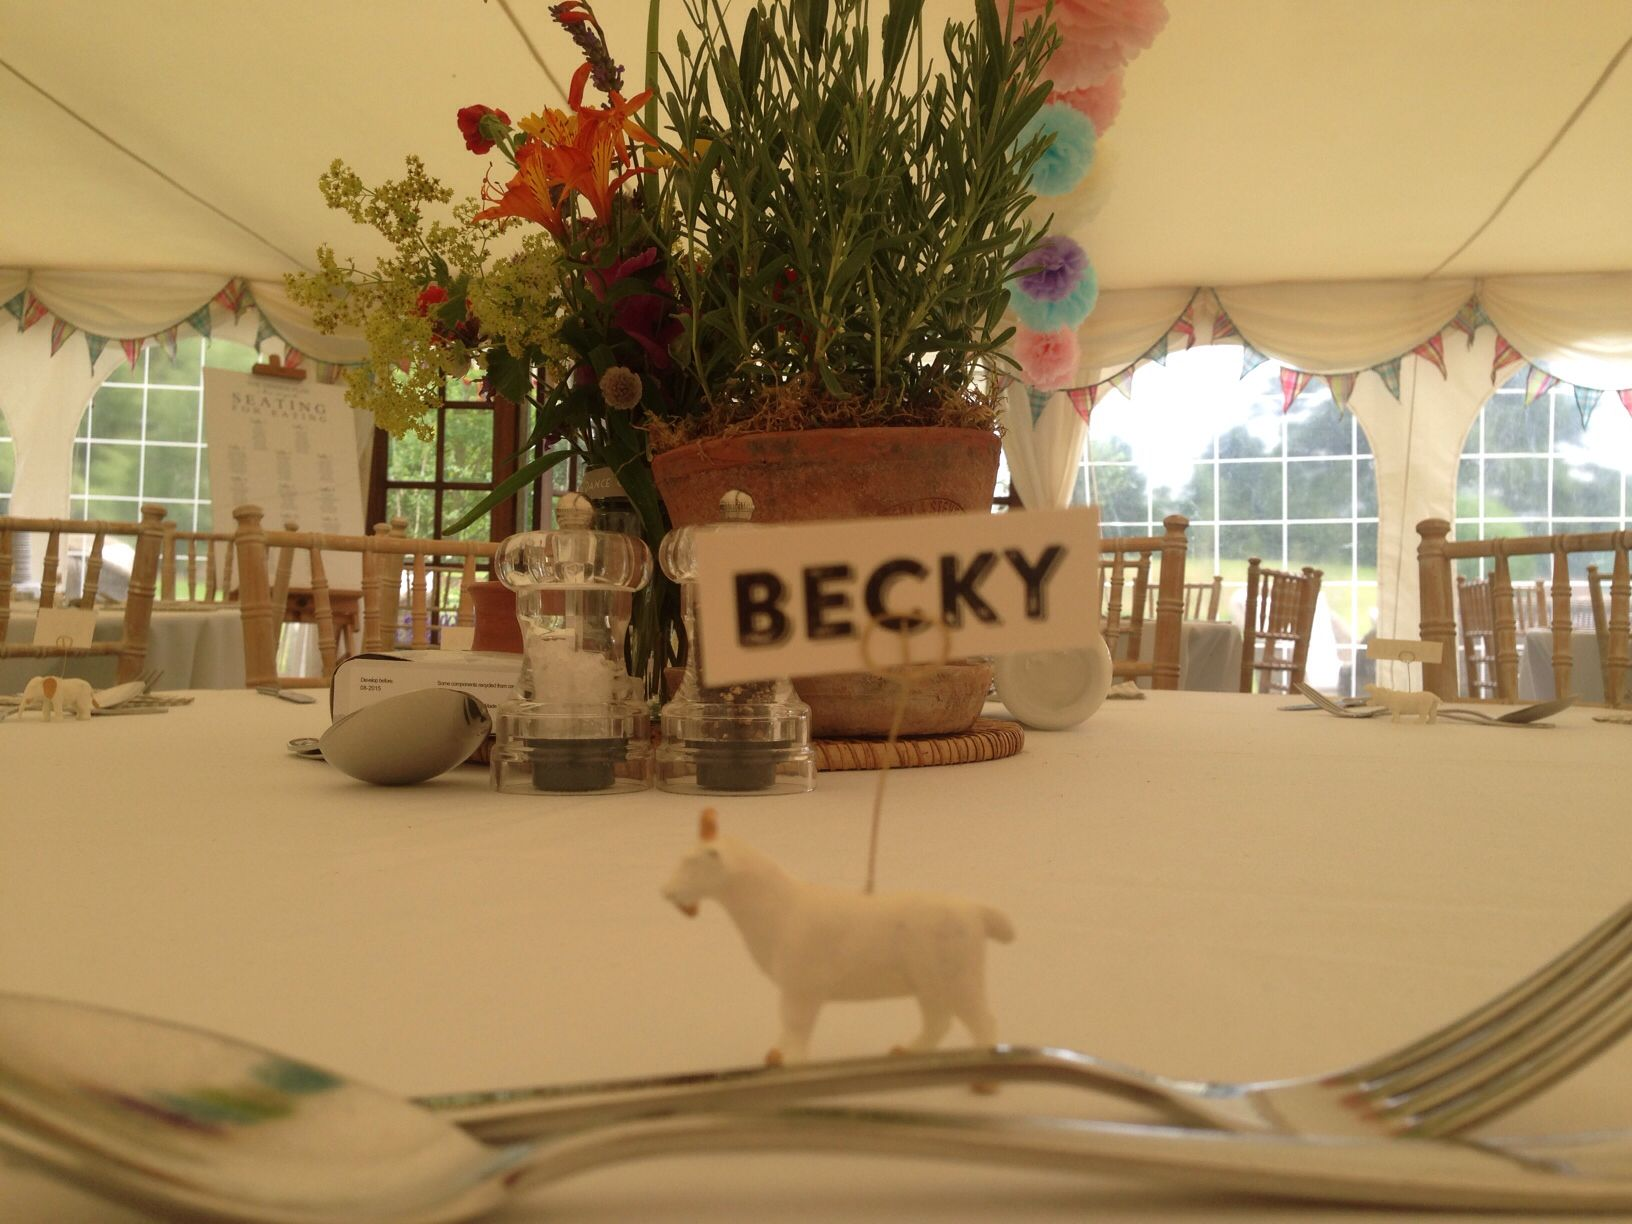 Beckys 21st Birthday Party